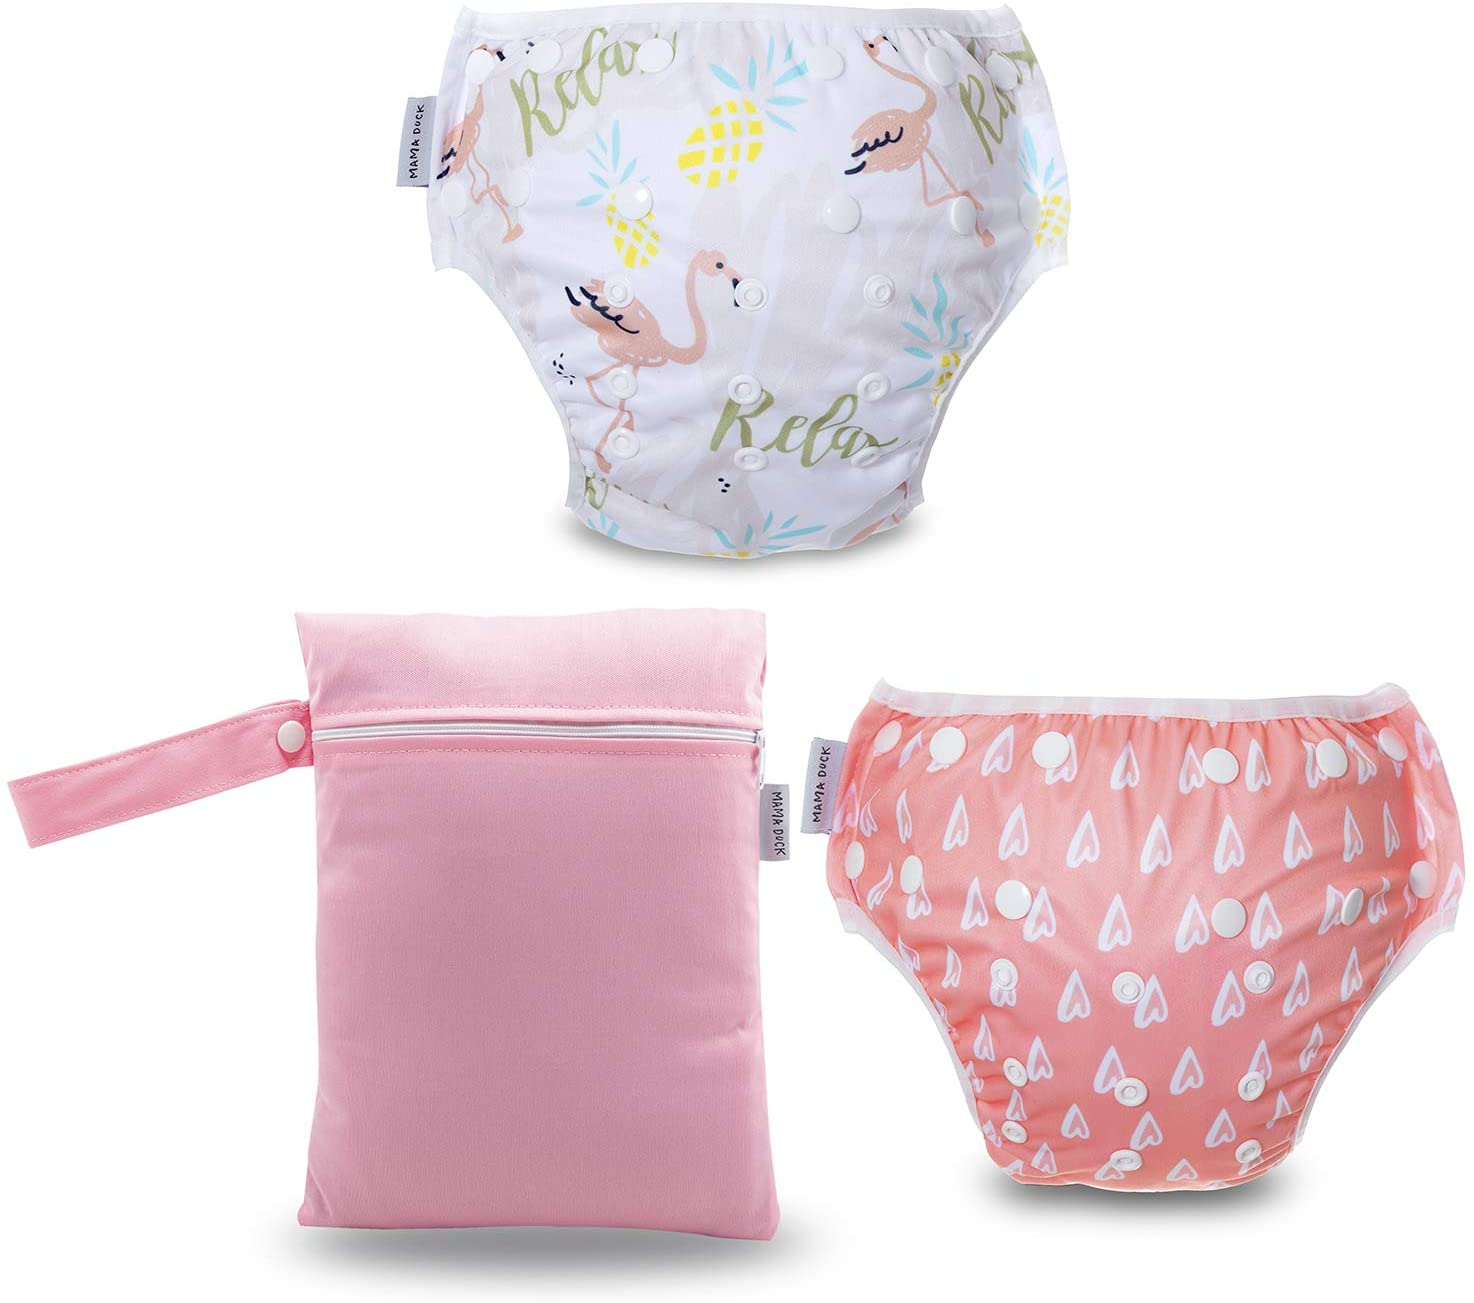 MAMA DUCK Reusable, Adjustable and Washable Baby Swim Diaper Plus Wet Bag. (8-35lbs) 2 Packs Light Pink